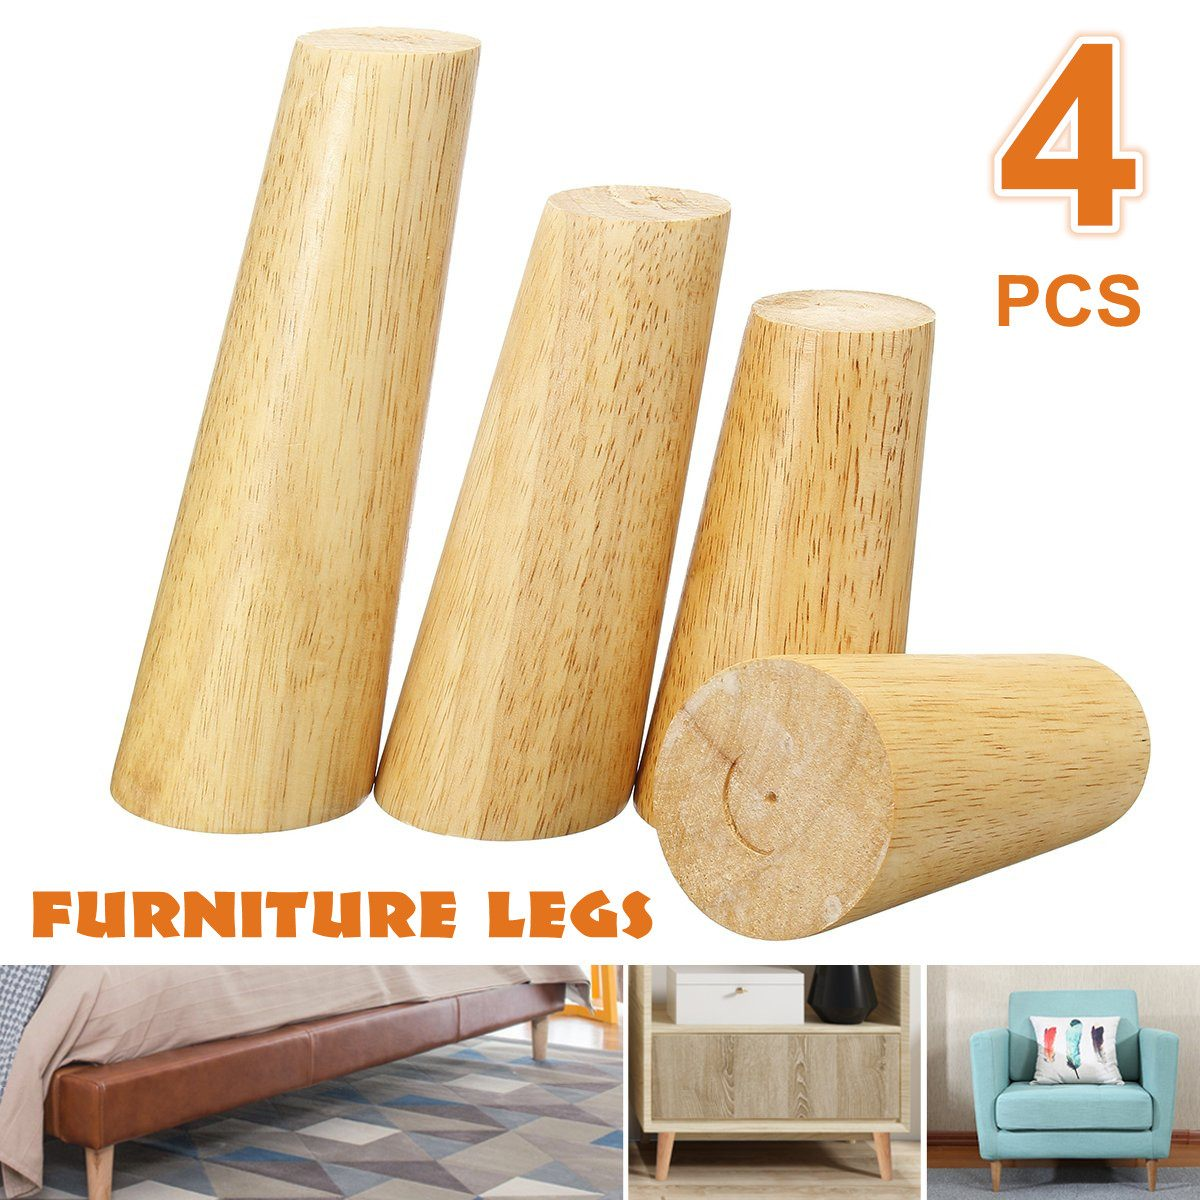 4pcs/lot Solid Wooden Oblique Angle Sofa Legs Feet Coffee Table Furniture Legs With Anti-skid Pad Iron Plate For Cabinets Tables